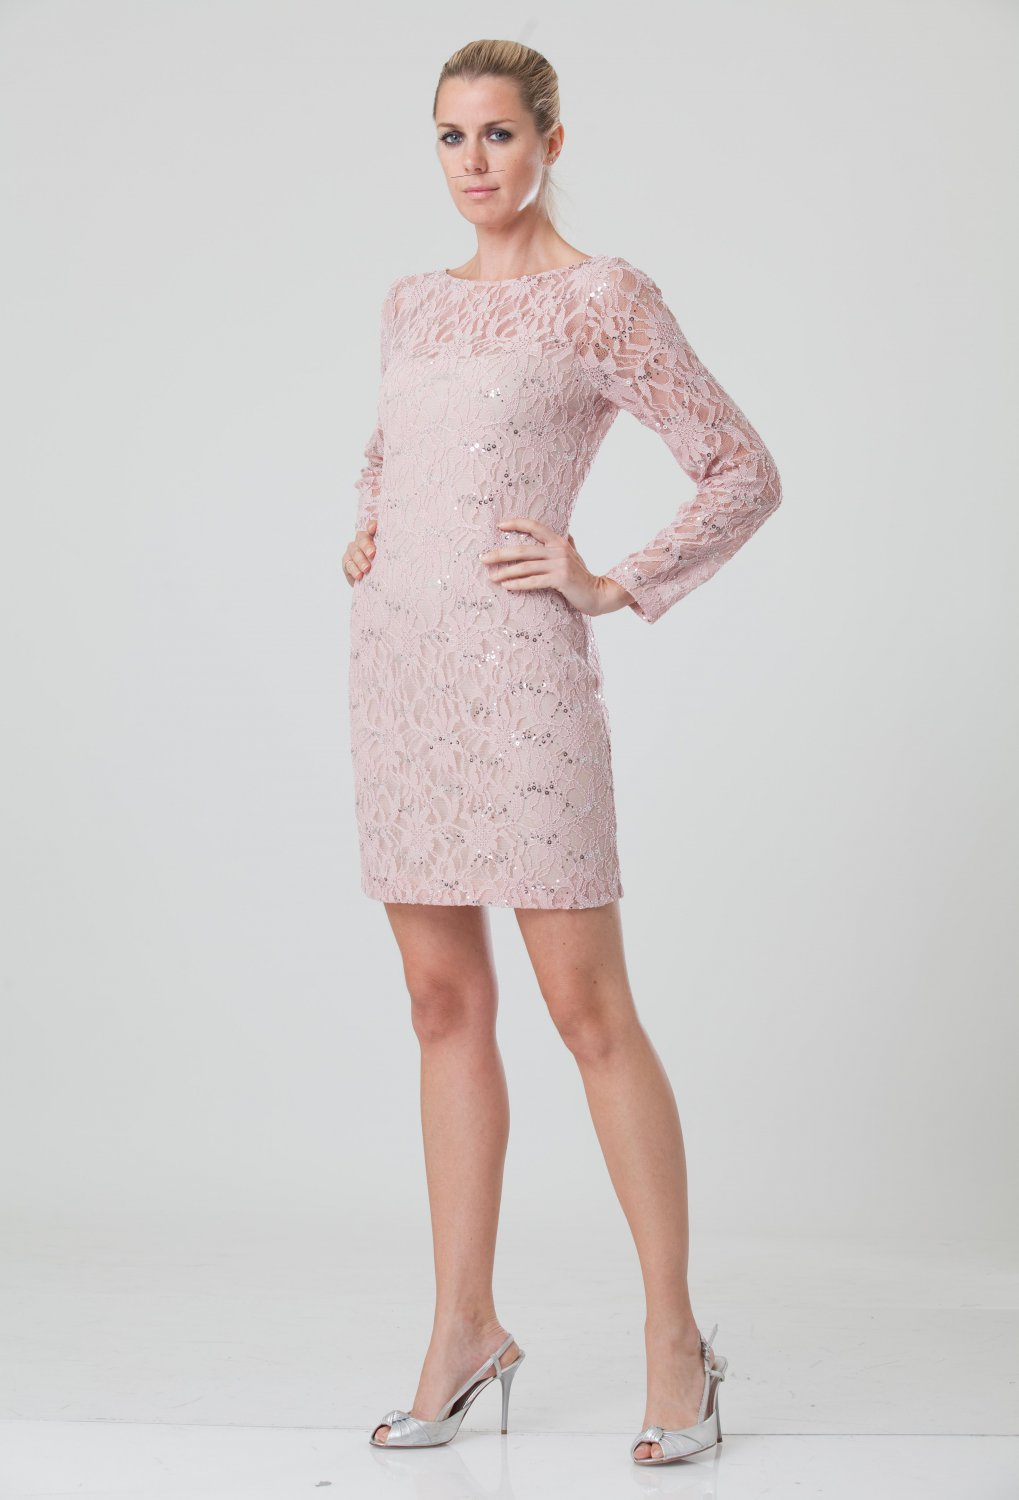 GA#862609 x - Long Sleeve Cocktail Dresses, Lace Formal Wear